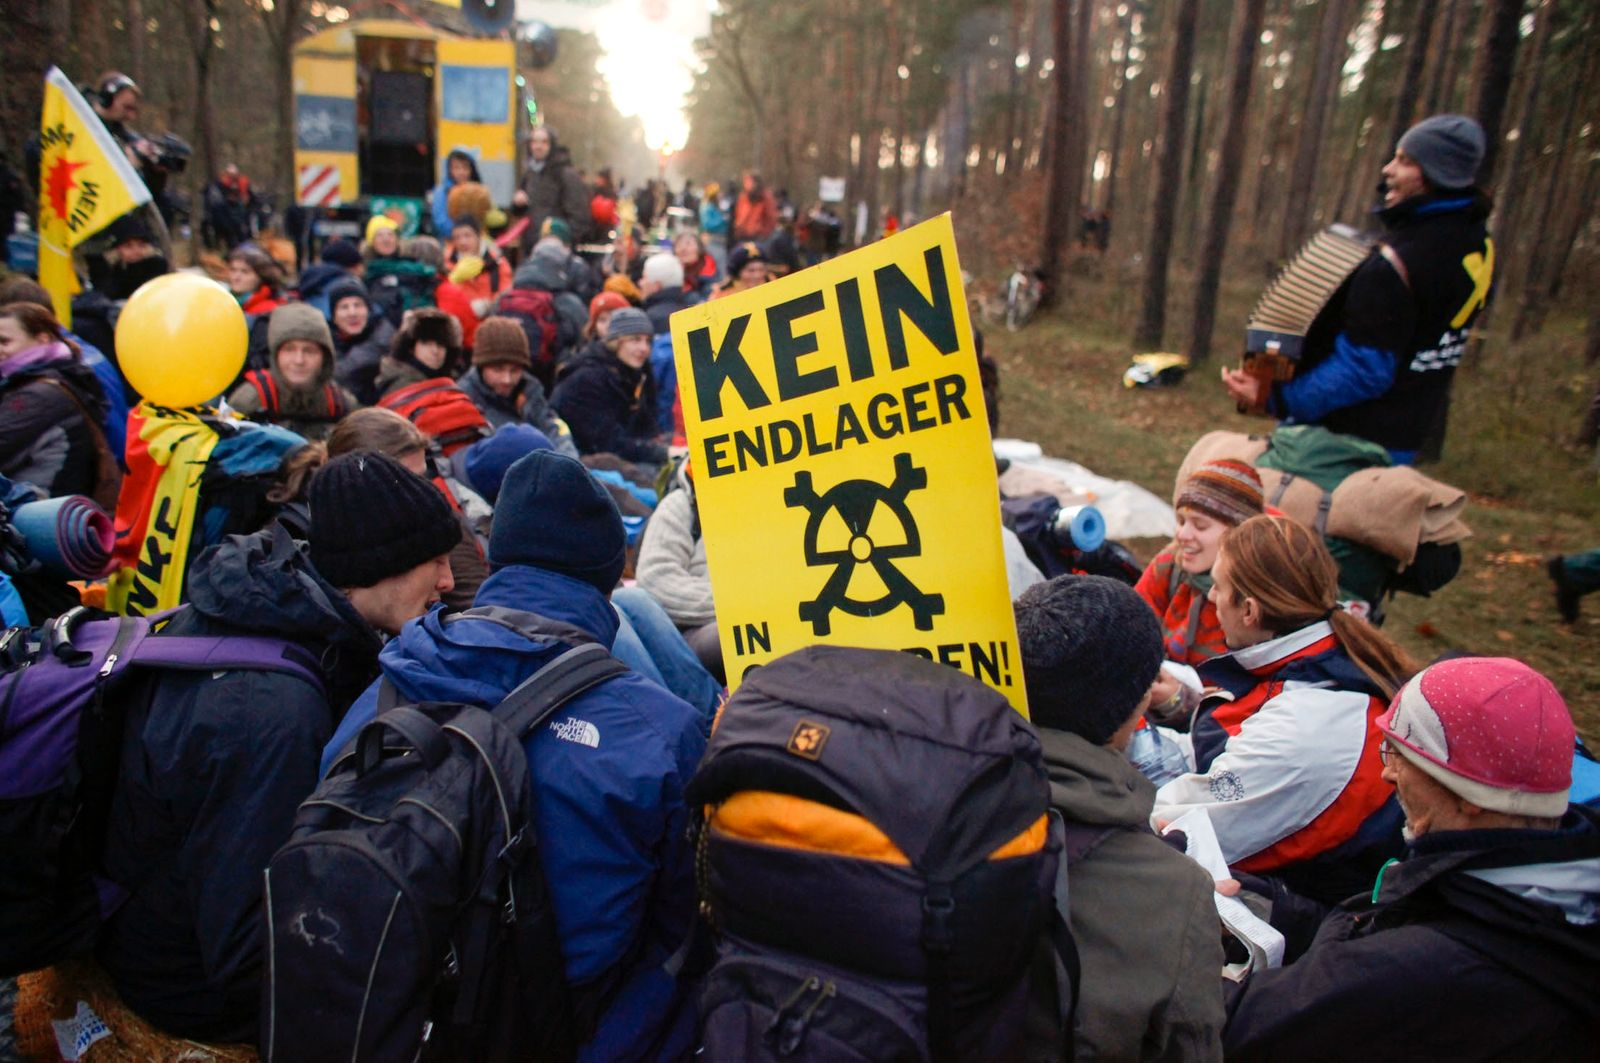 Anti-nuclear protesters block street to prevent Castor transportation in Gorleben